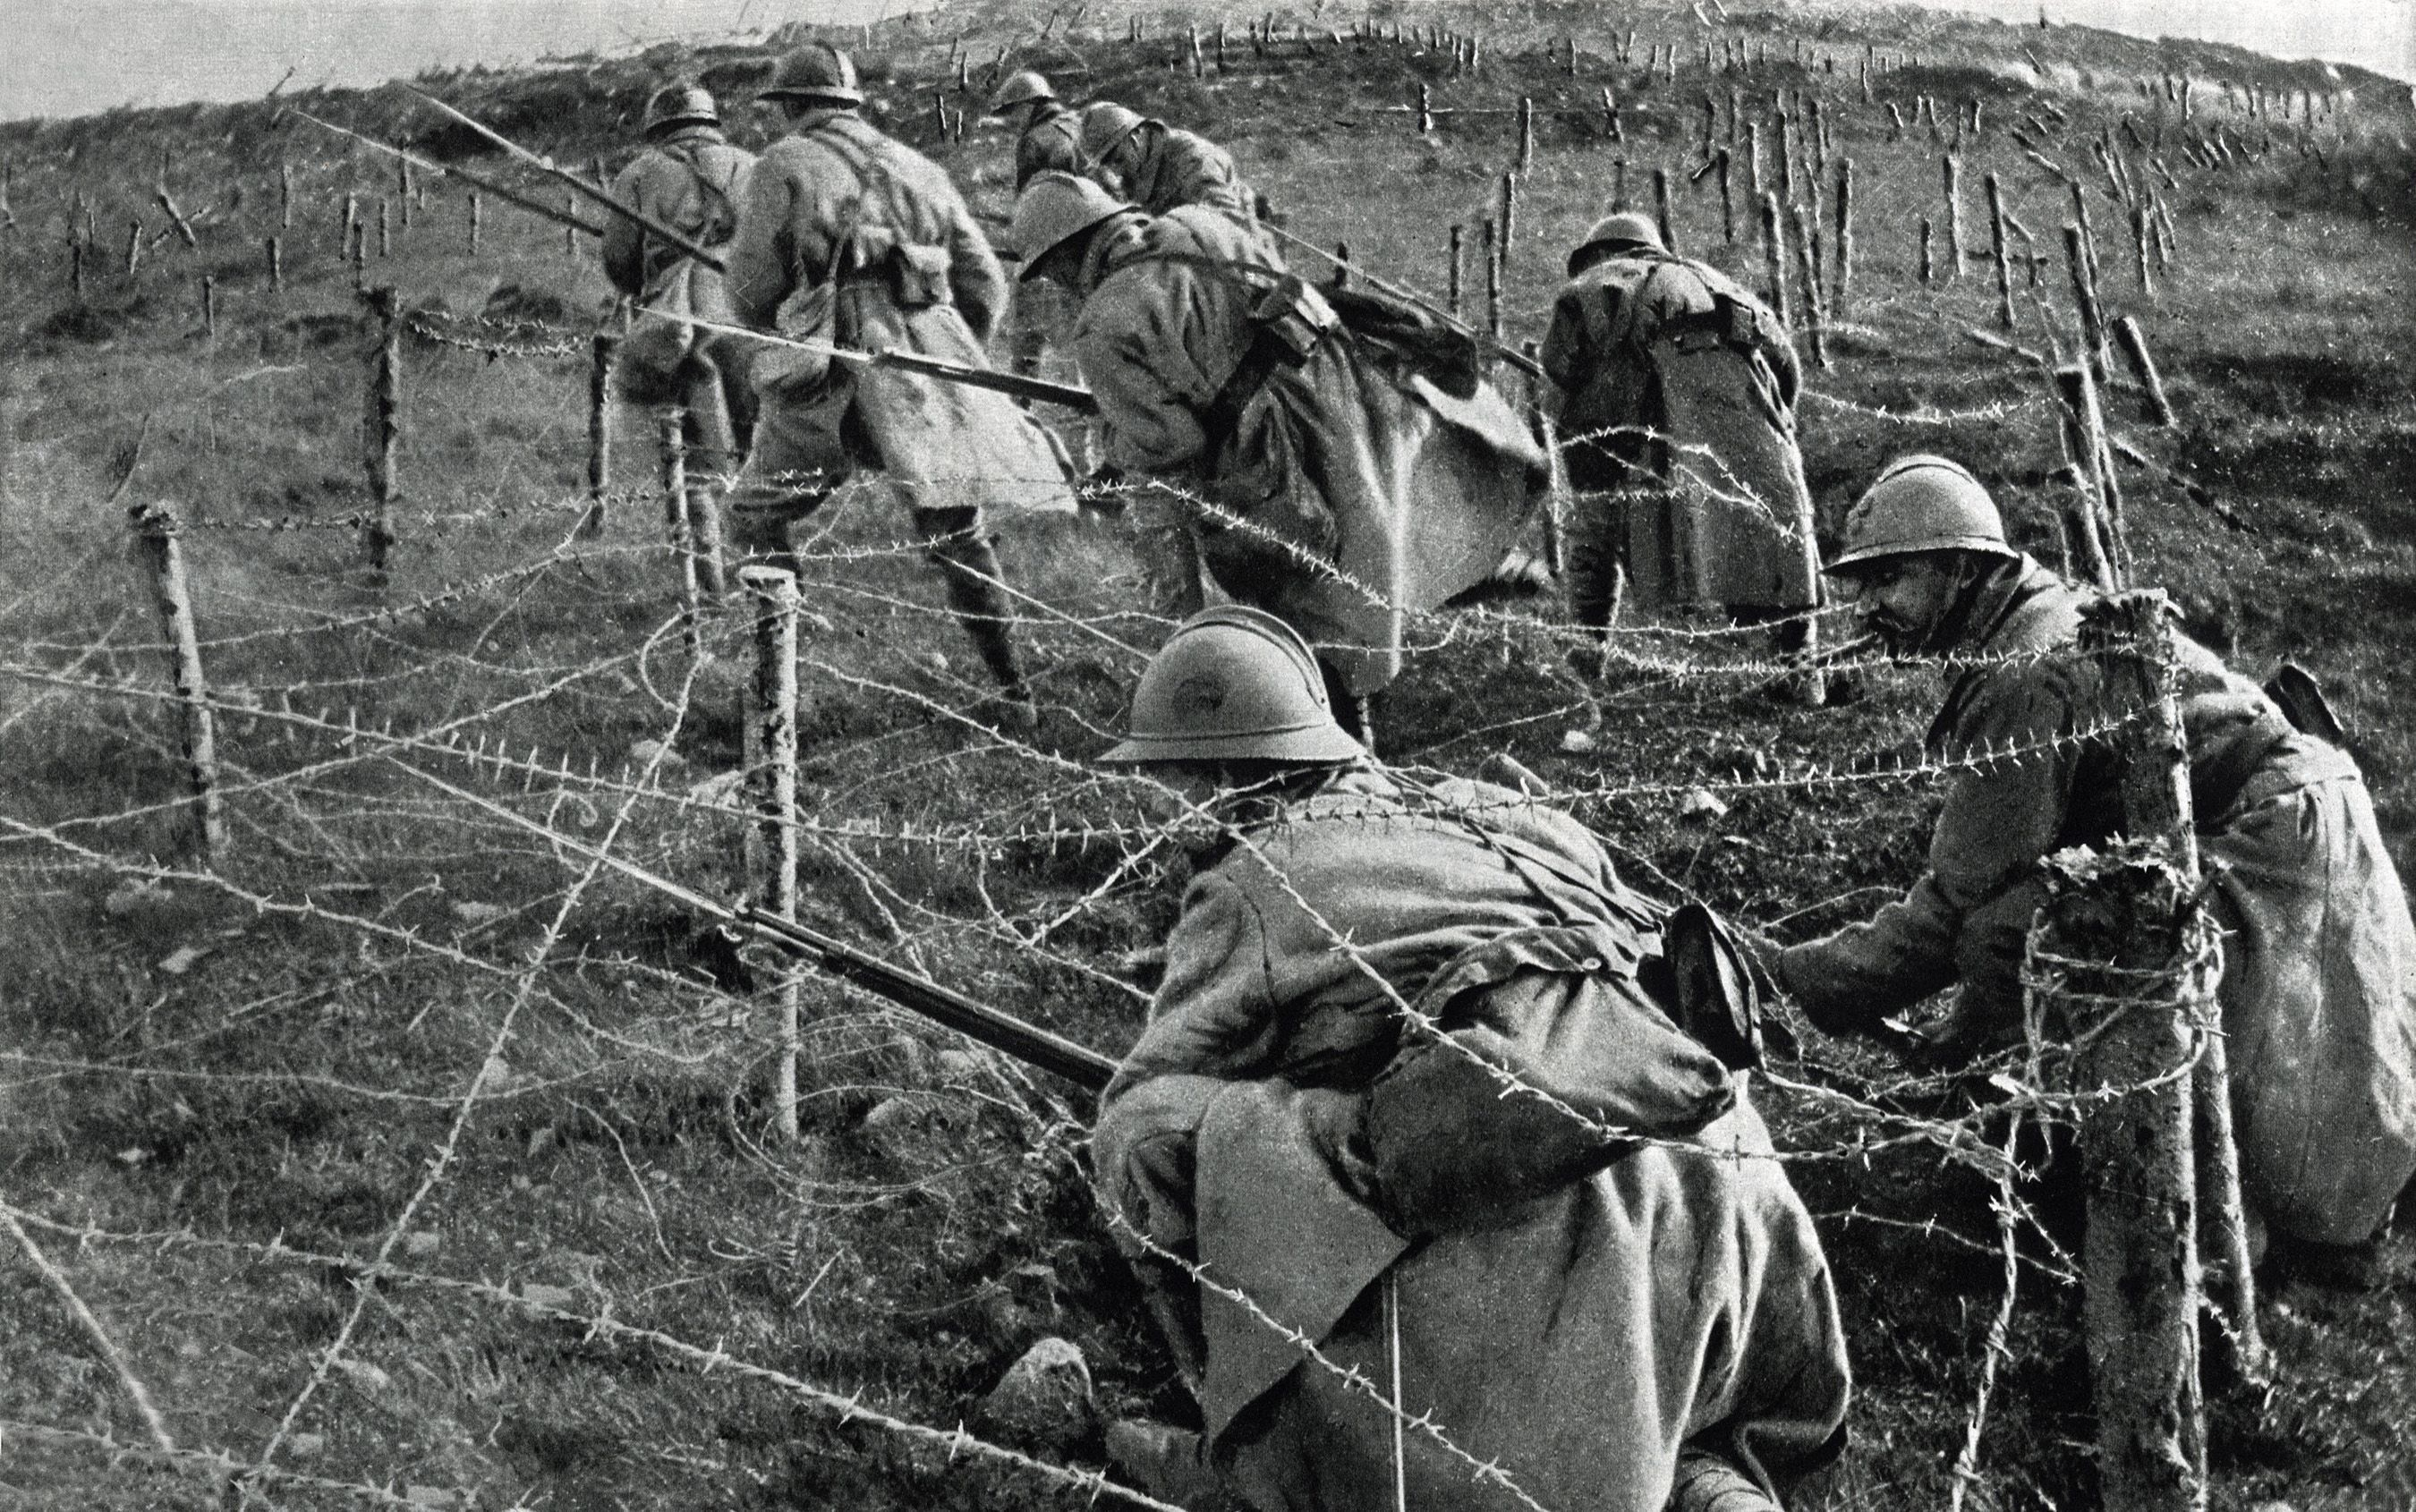 French soldiers crawling through their own barbed wire entanglements as they begin an attack on enemy trenches. April-June, 1916 (Everett Historical/Shutterstock)